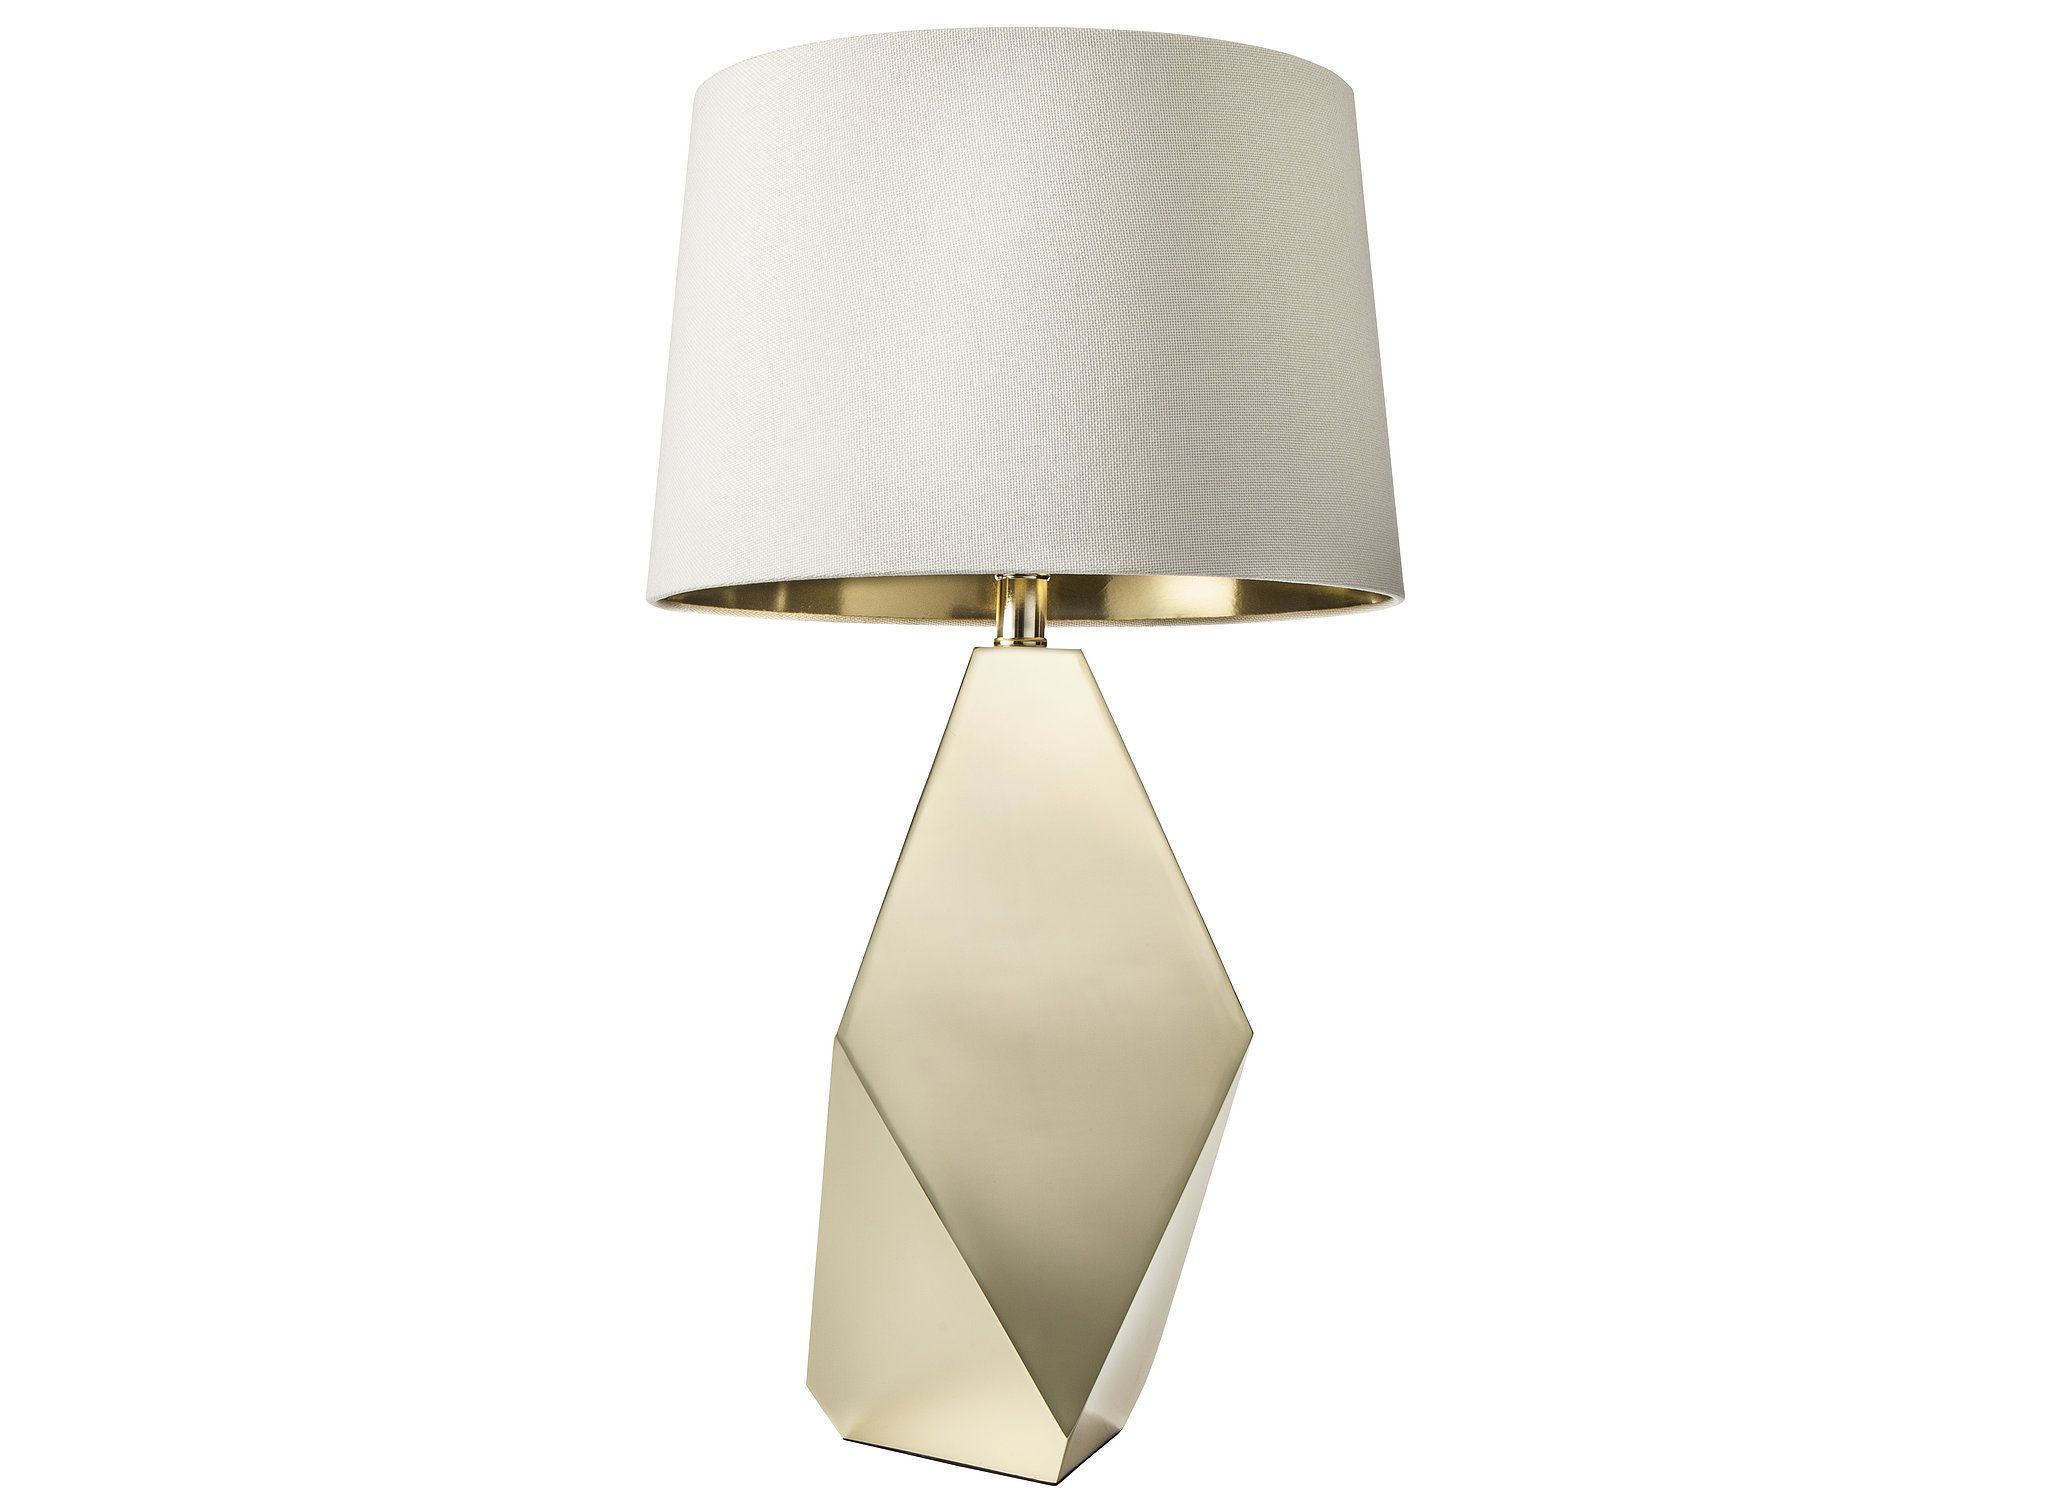 Good Gold Table Lamp Base ($55) And Gold Lining Lamp Shade ($25).